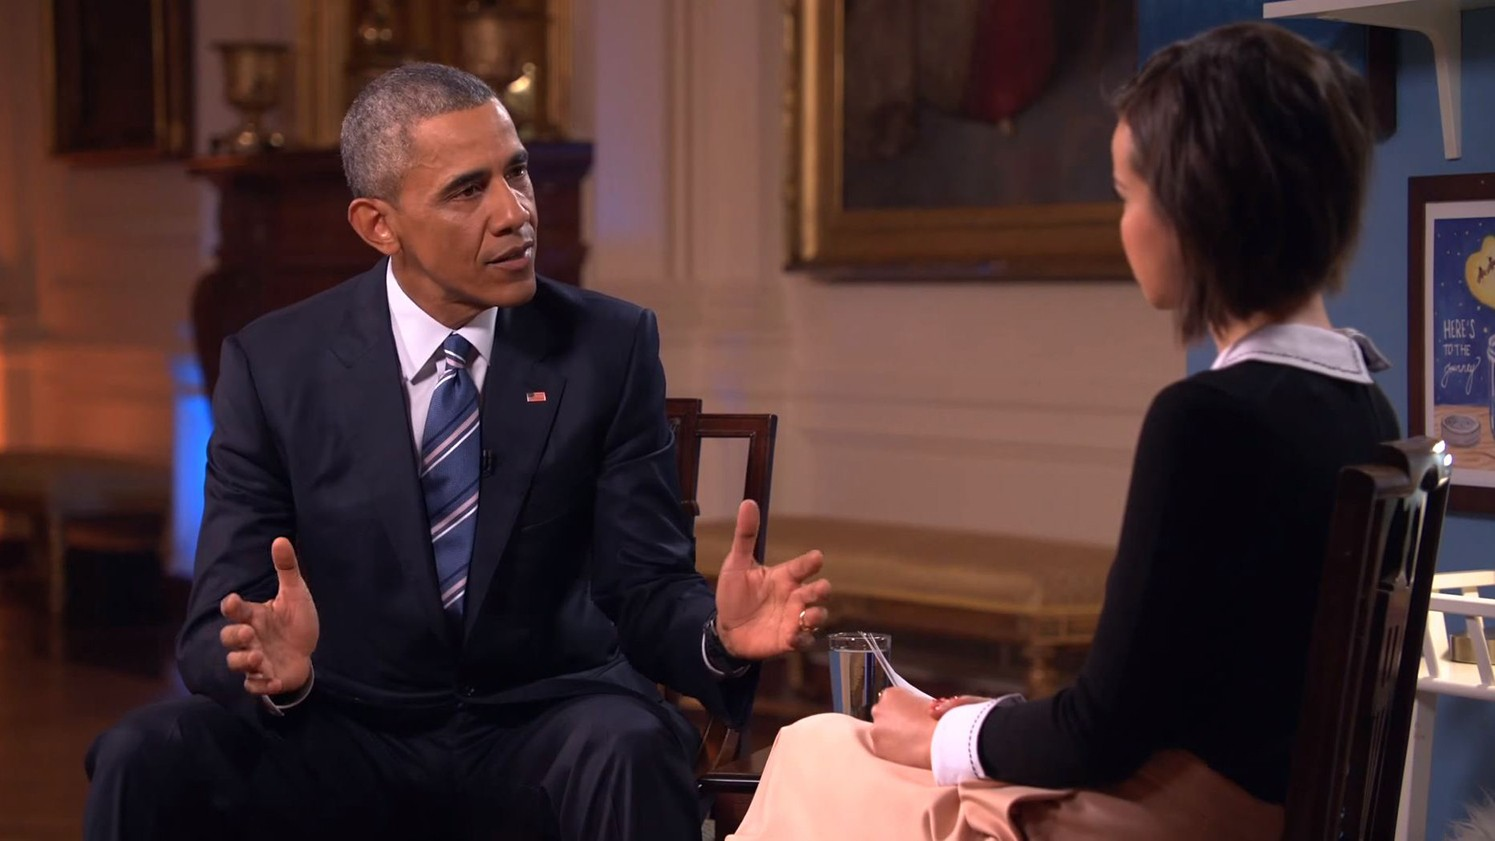 ​obama says tampon tax was probably introduced because men were making the laws